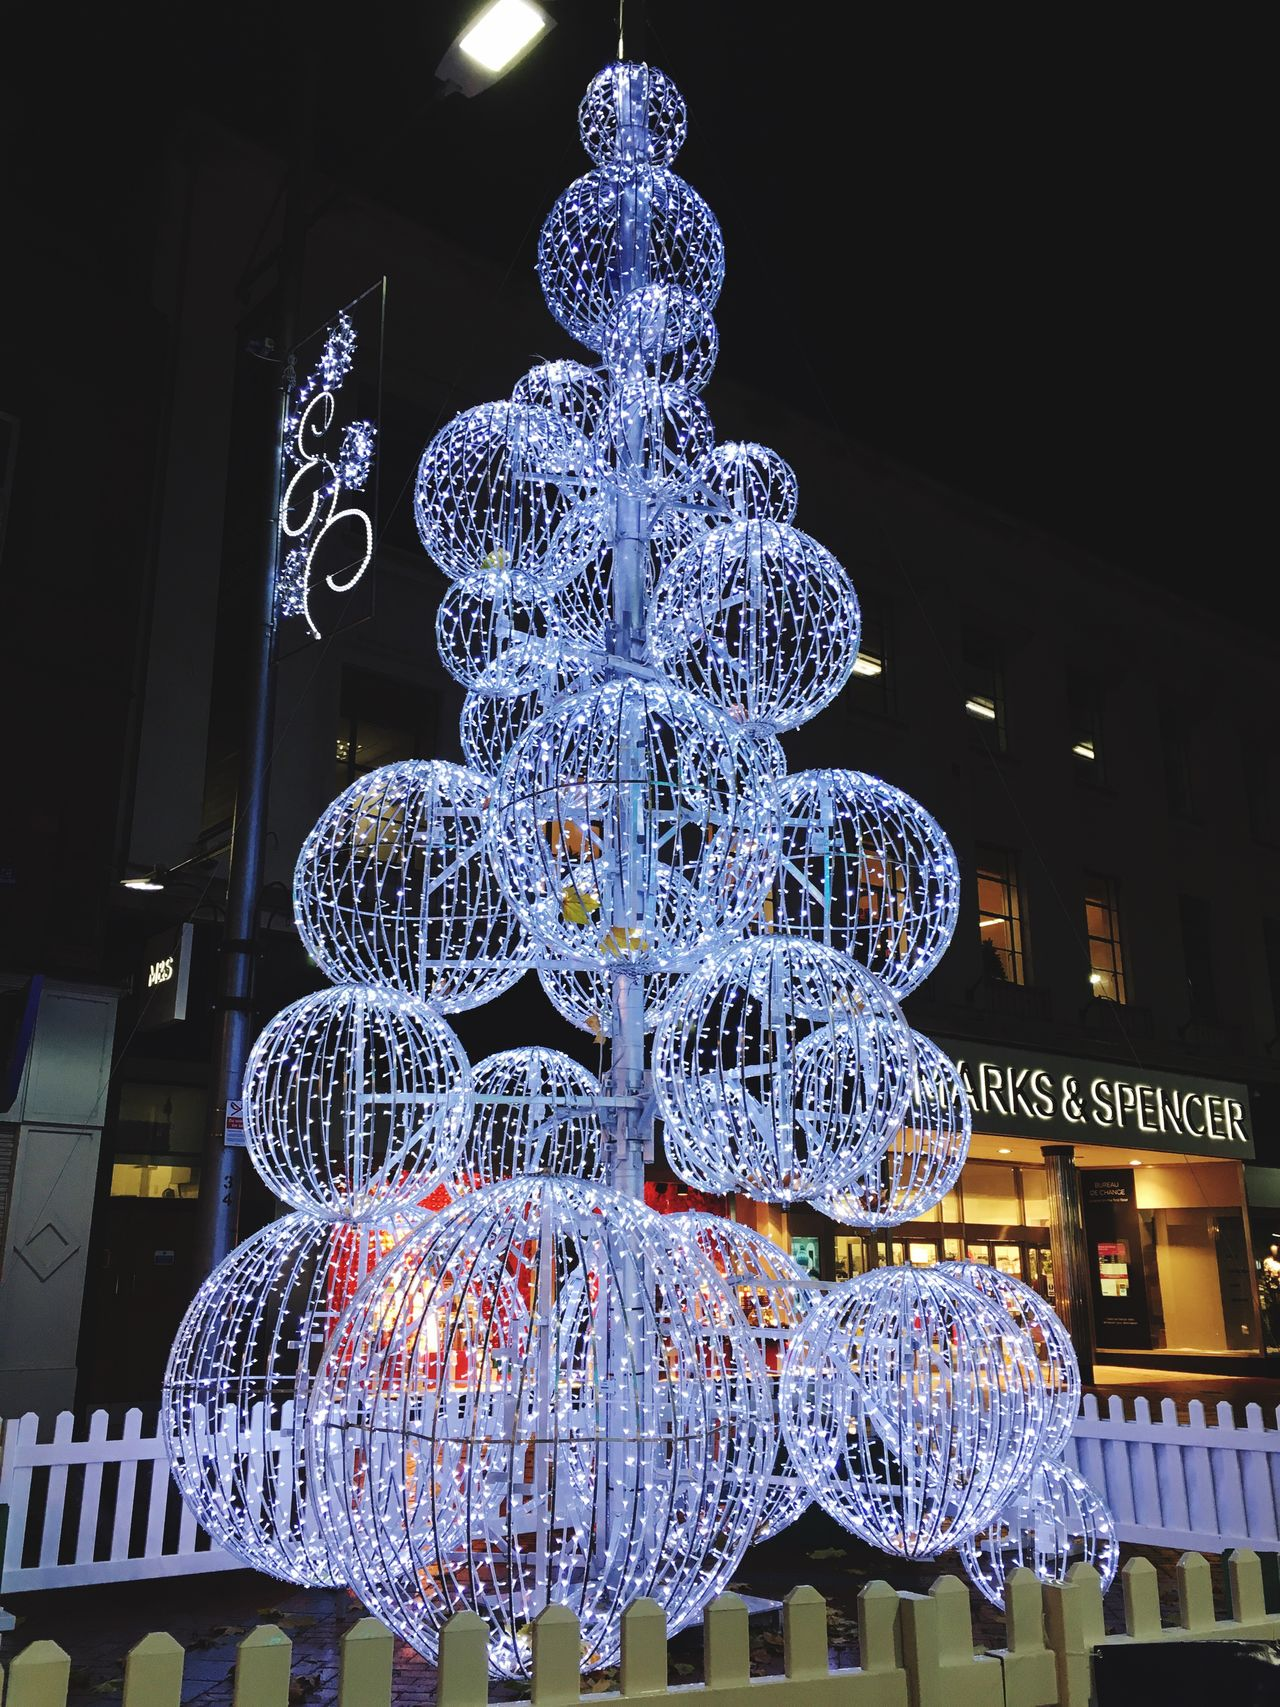 Lights Christmas Is Coming Beautiful Sparkling Lights Reading Town Centre Night Silence Amazing Light Up BallsIlluminated Low Angle View Christmas Ornament